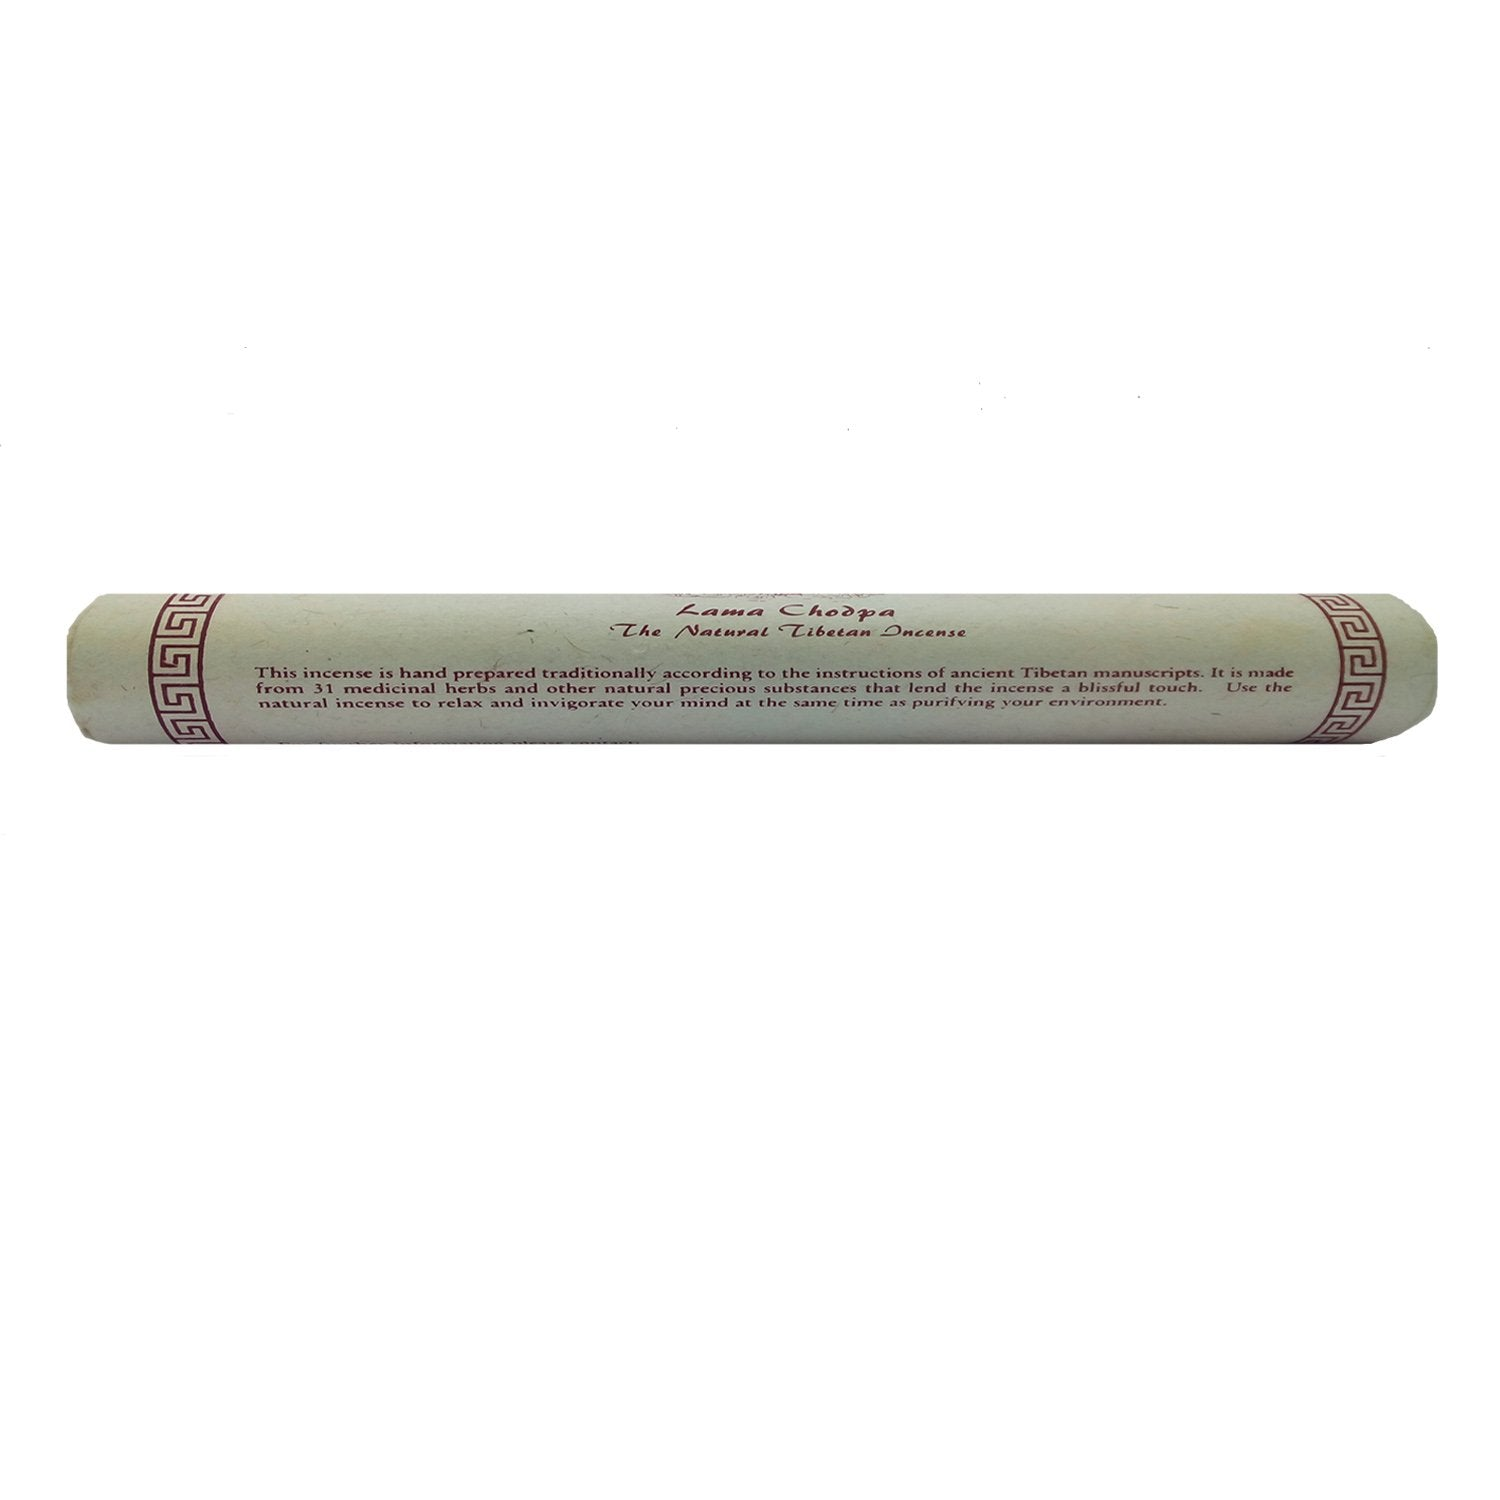 Tibetan Monastery Small Incense Sticks For Relaxation - Bagaholics Gift